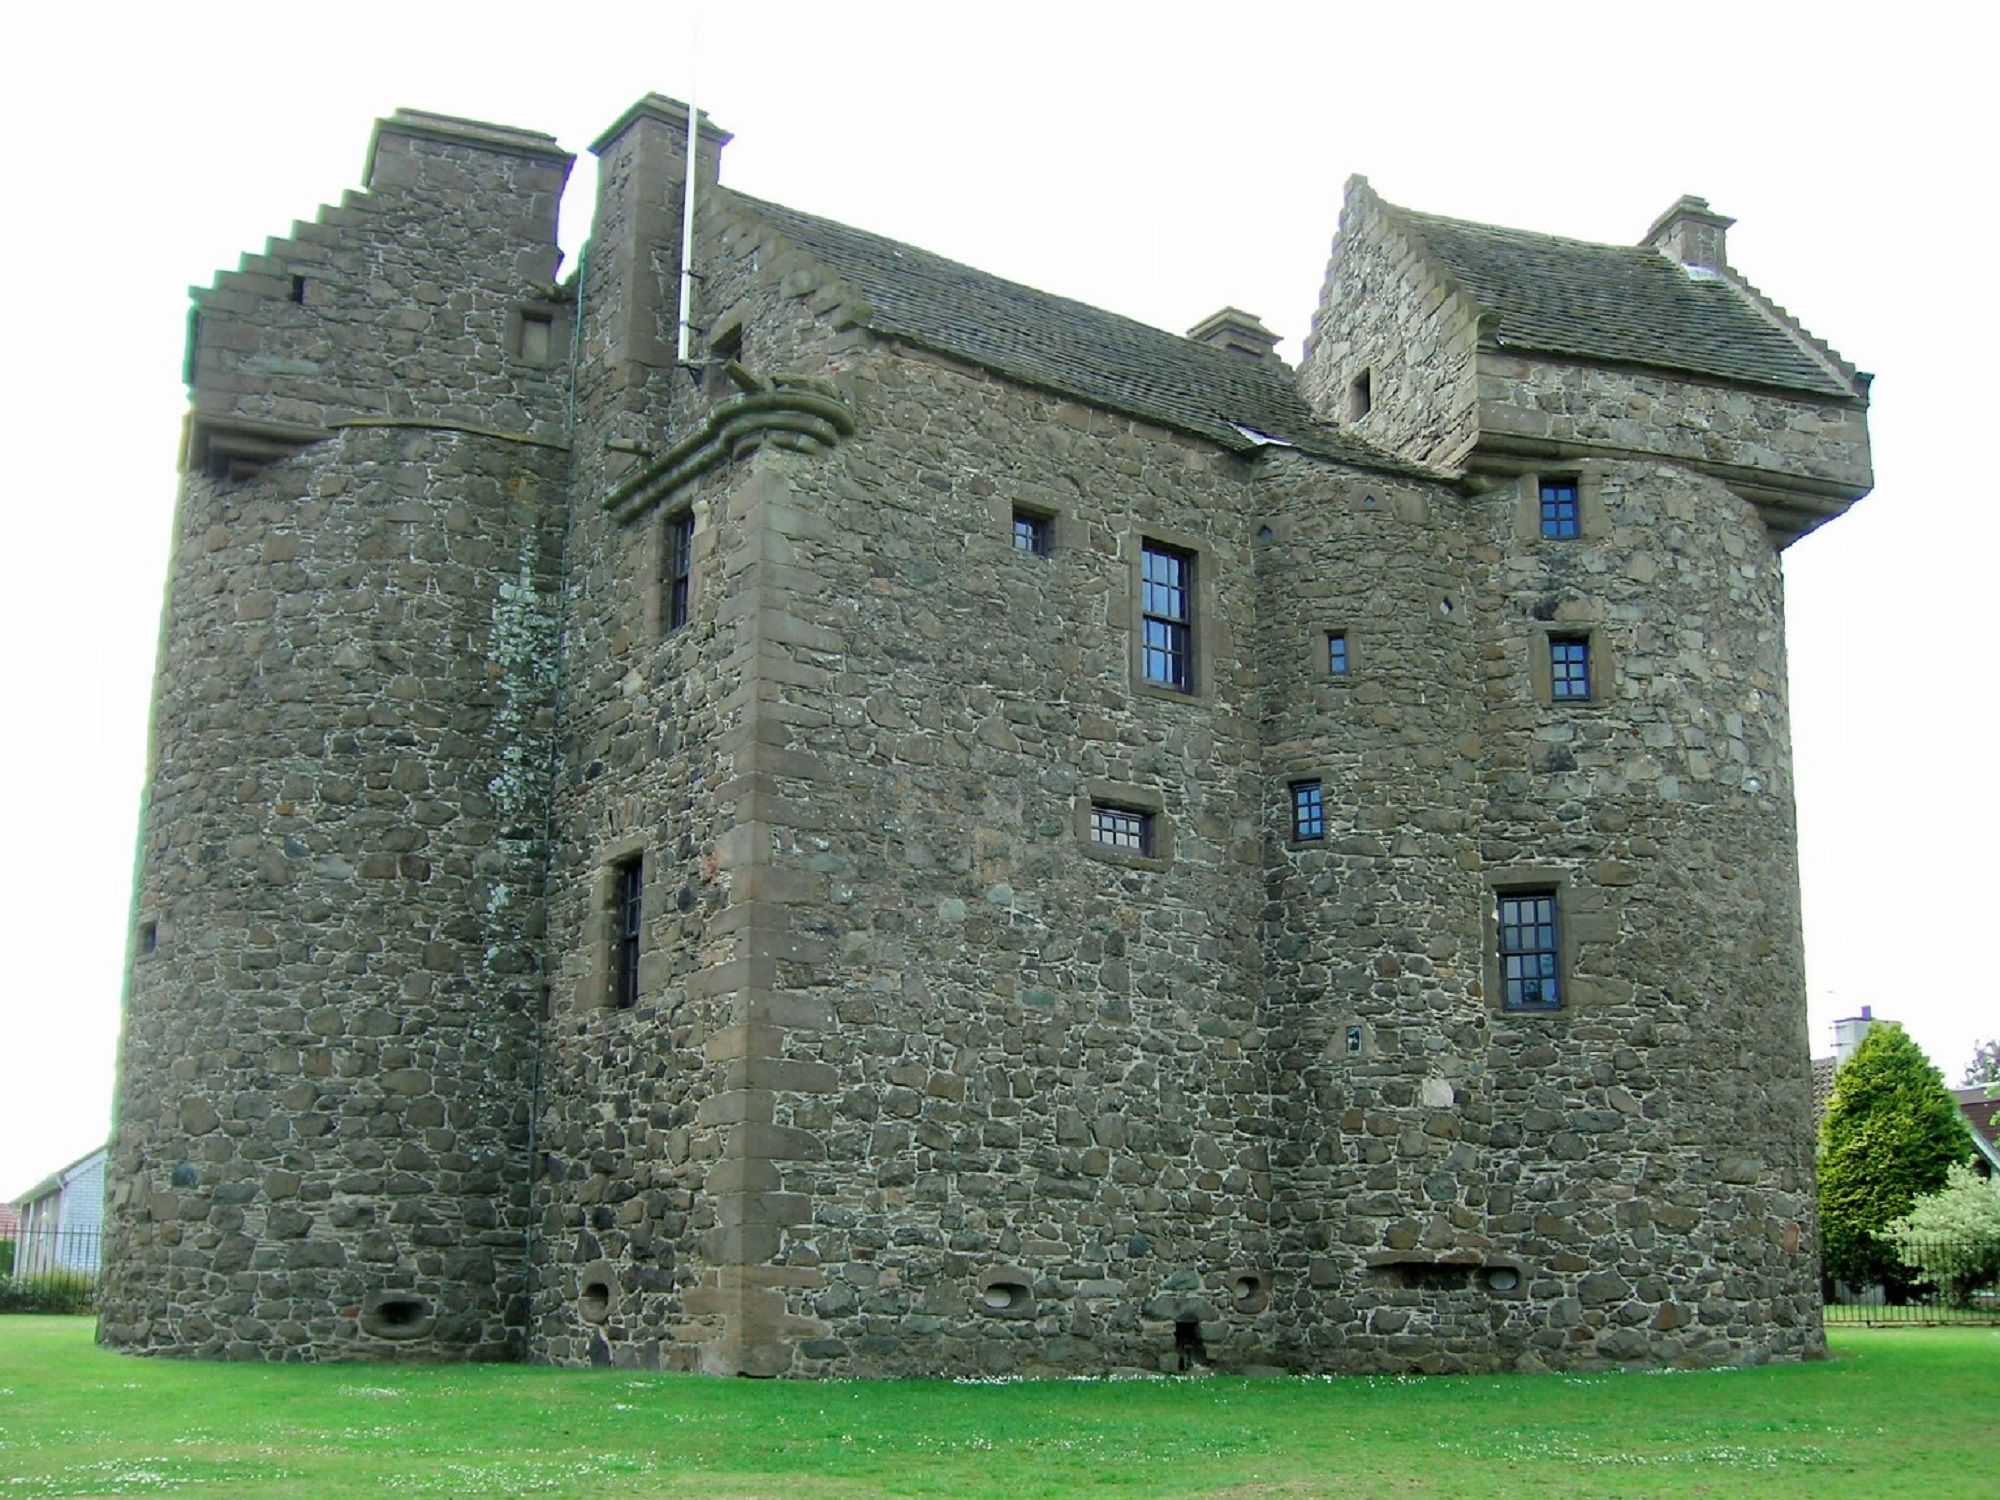 claypotts-castle-in-dundee-scotland-dreamstimel137771649